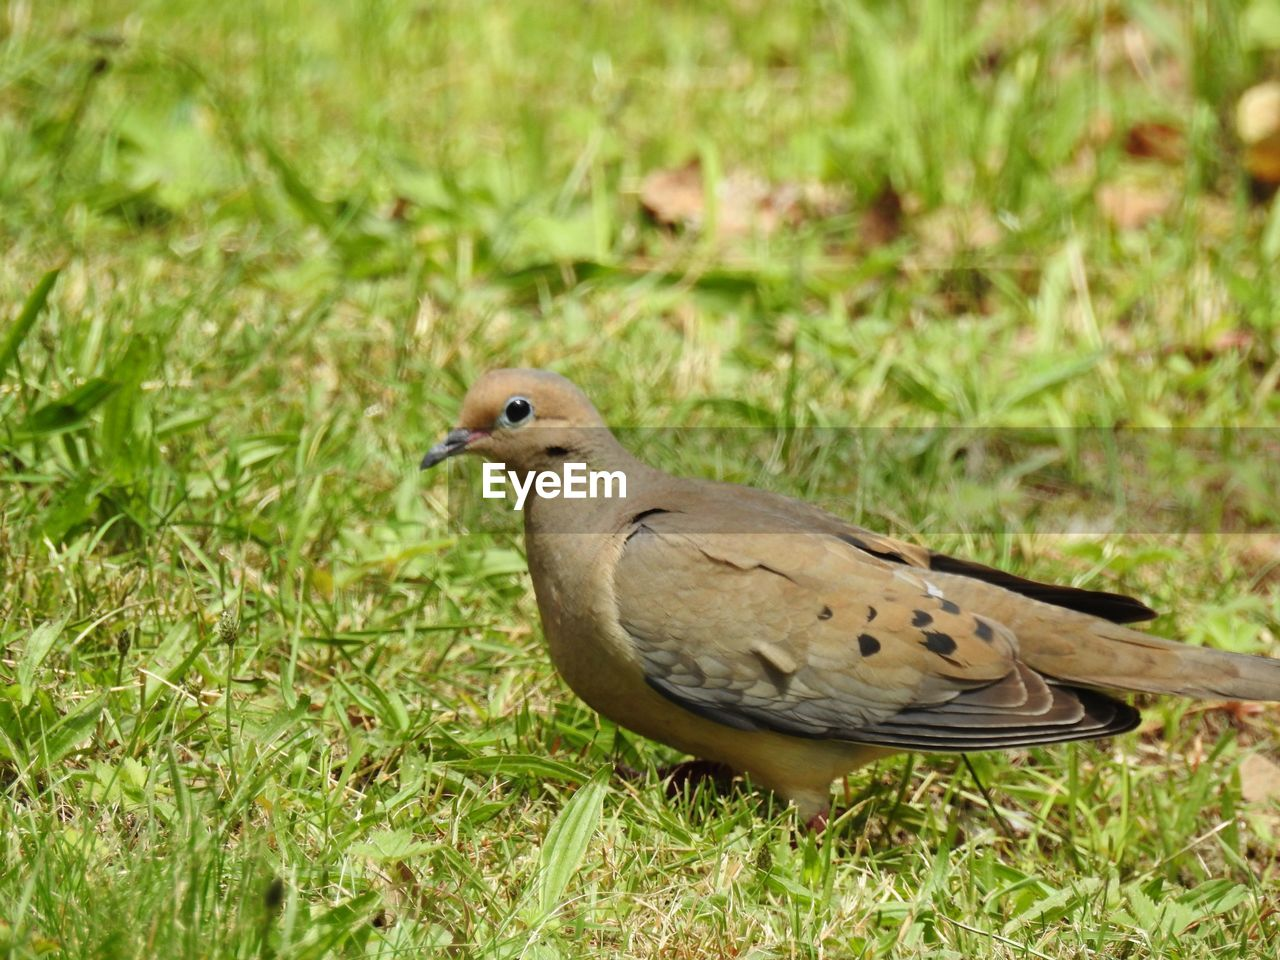 animal themes, bird, animal wildlife, one animal, animals in the wild, animal, vertebrate, grass, plant, green color, nature, day, field, mourning dove, no people, land, perching, dove - bird, close-up, focus on foreground, outdoors